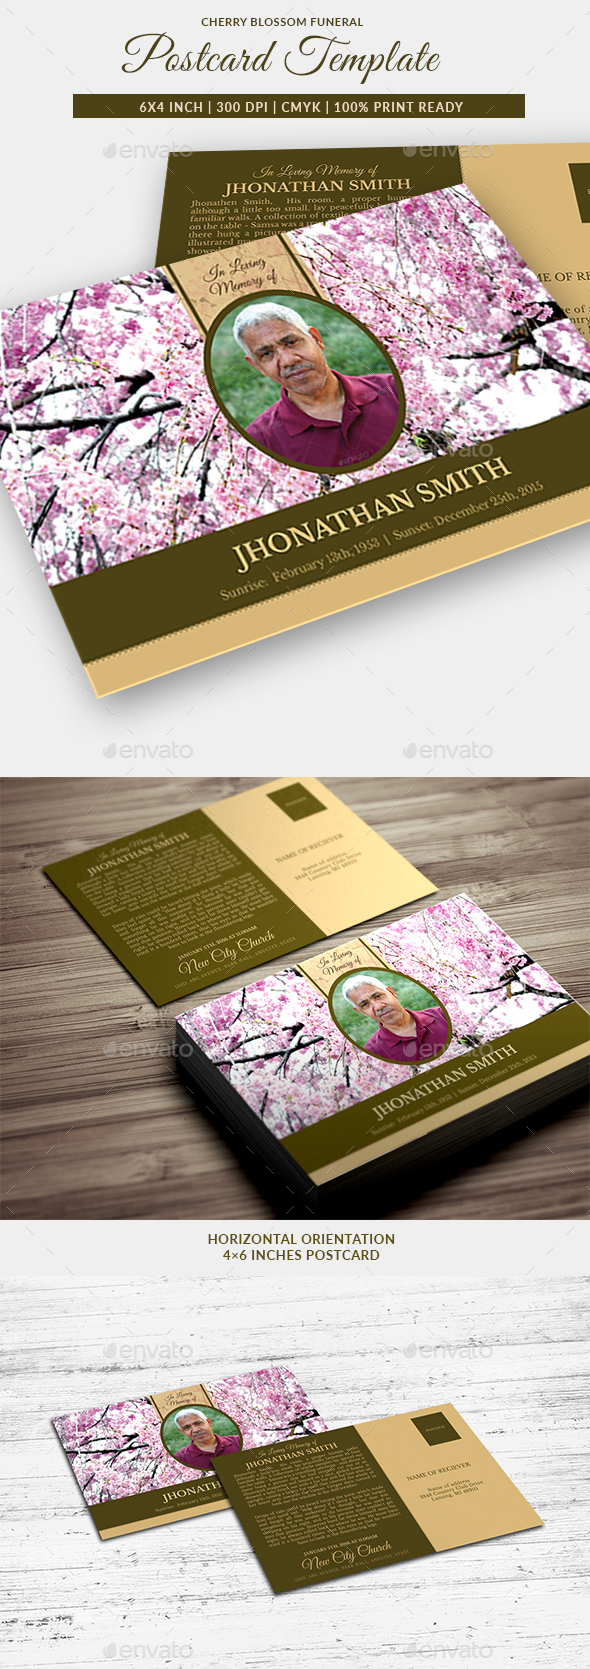 Cherry Blossom Funeral Post Card Template - Miscellaneous Print Templates